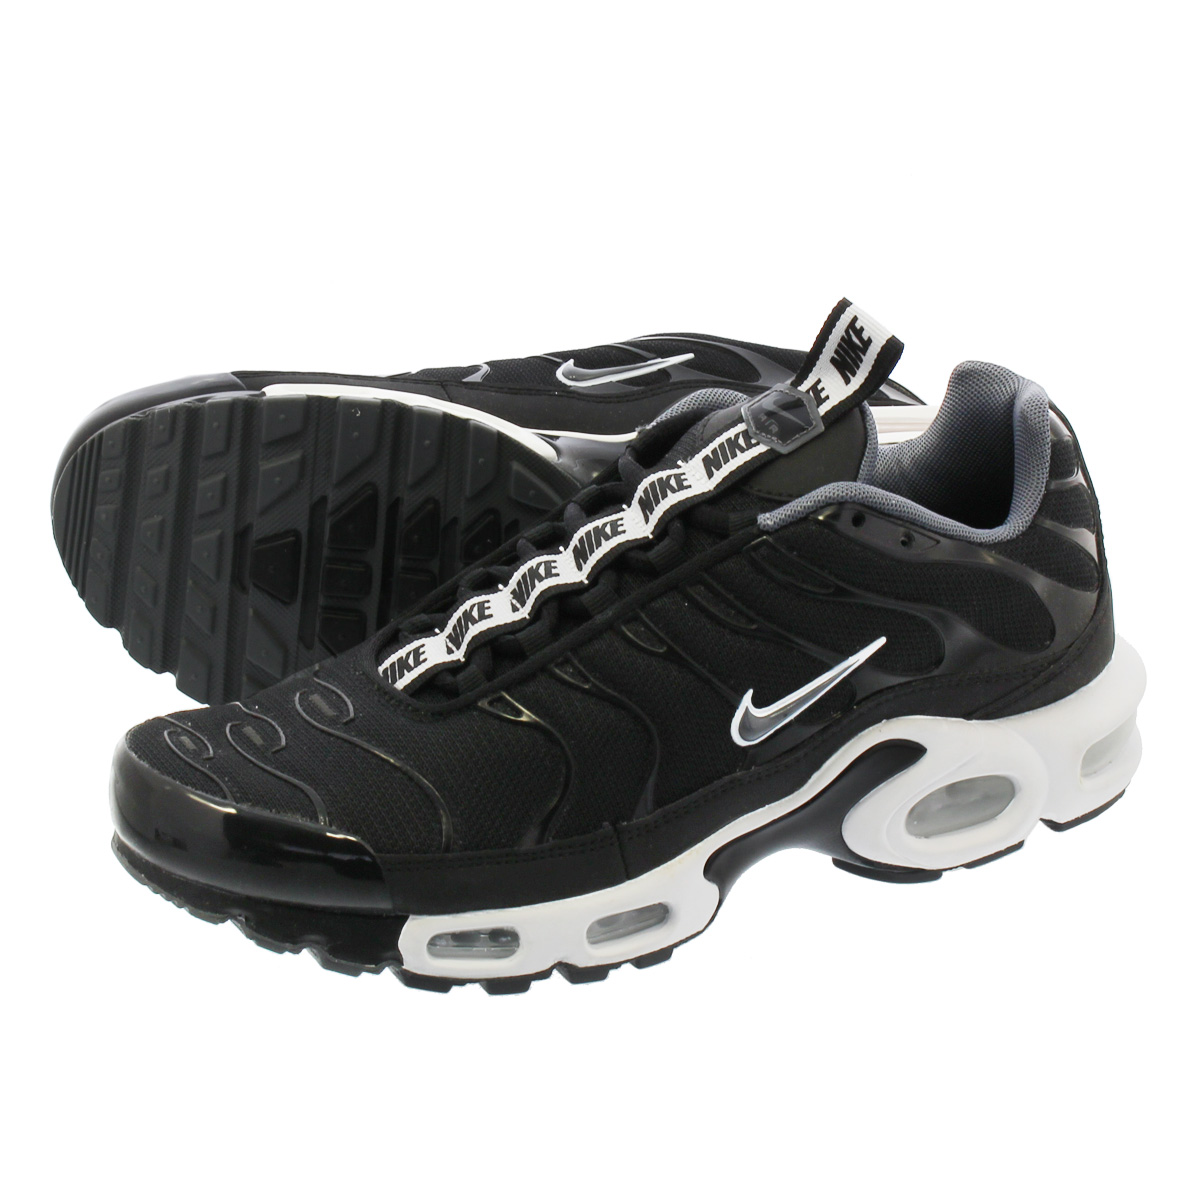 LOWTEX PLUS: NIKE AIR MAX PLUS TN SE Kie Ney AMAX plus TN SE BLACK ...